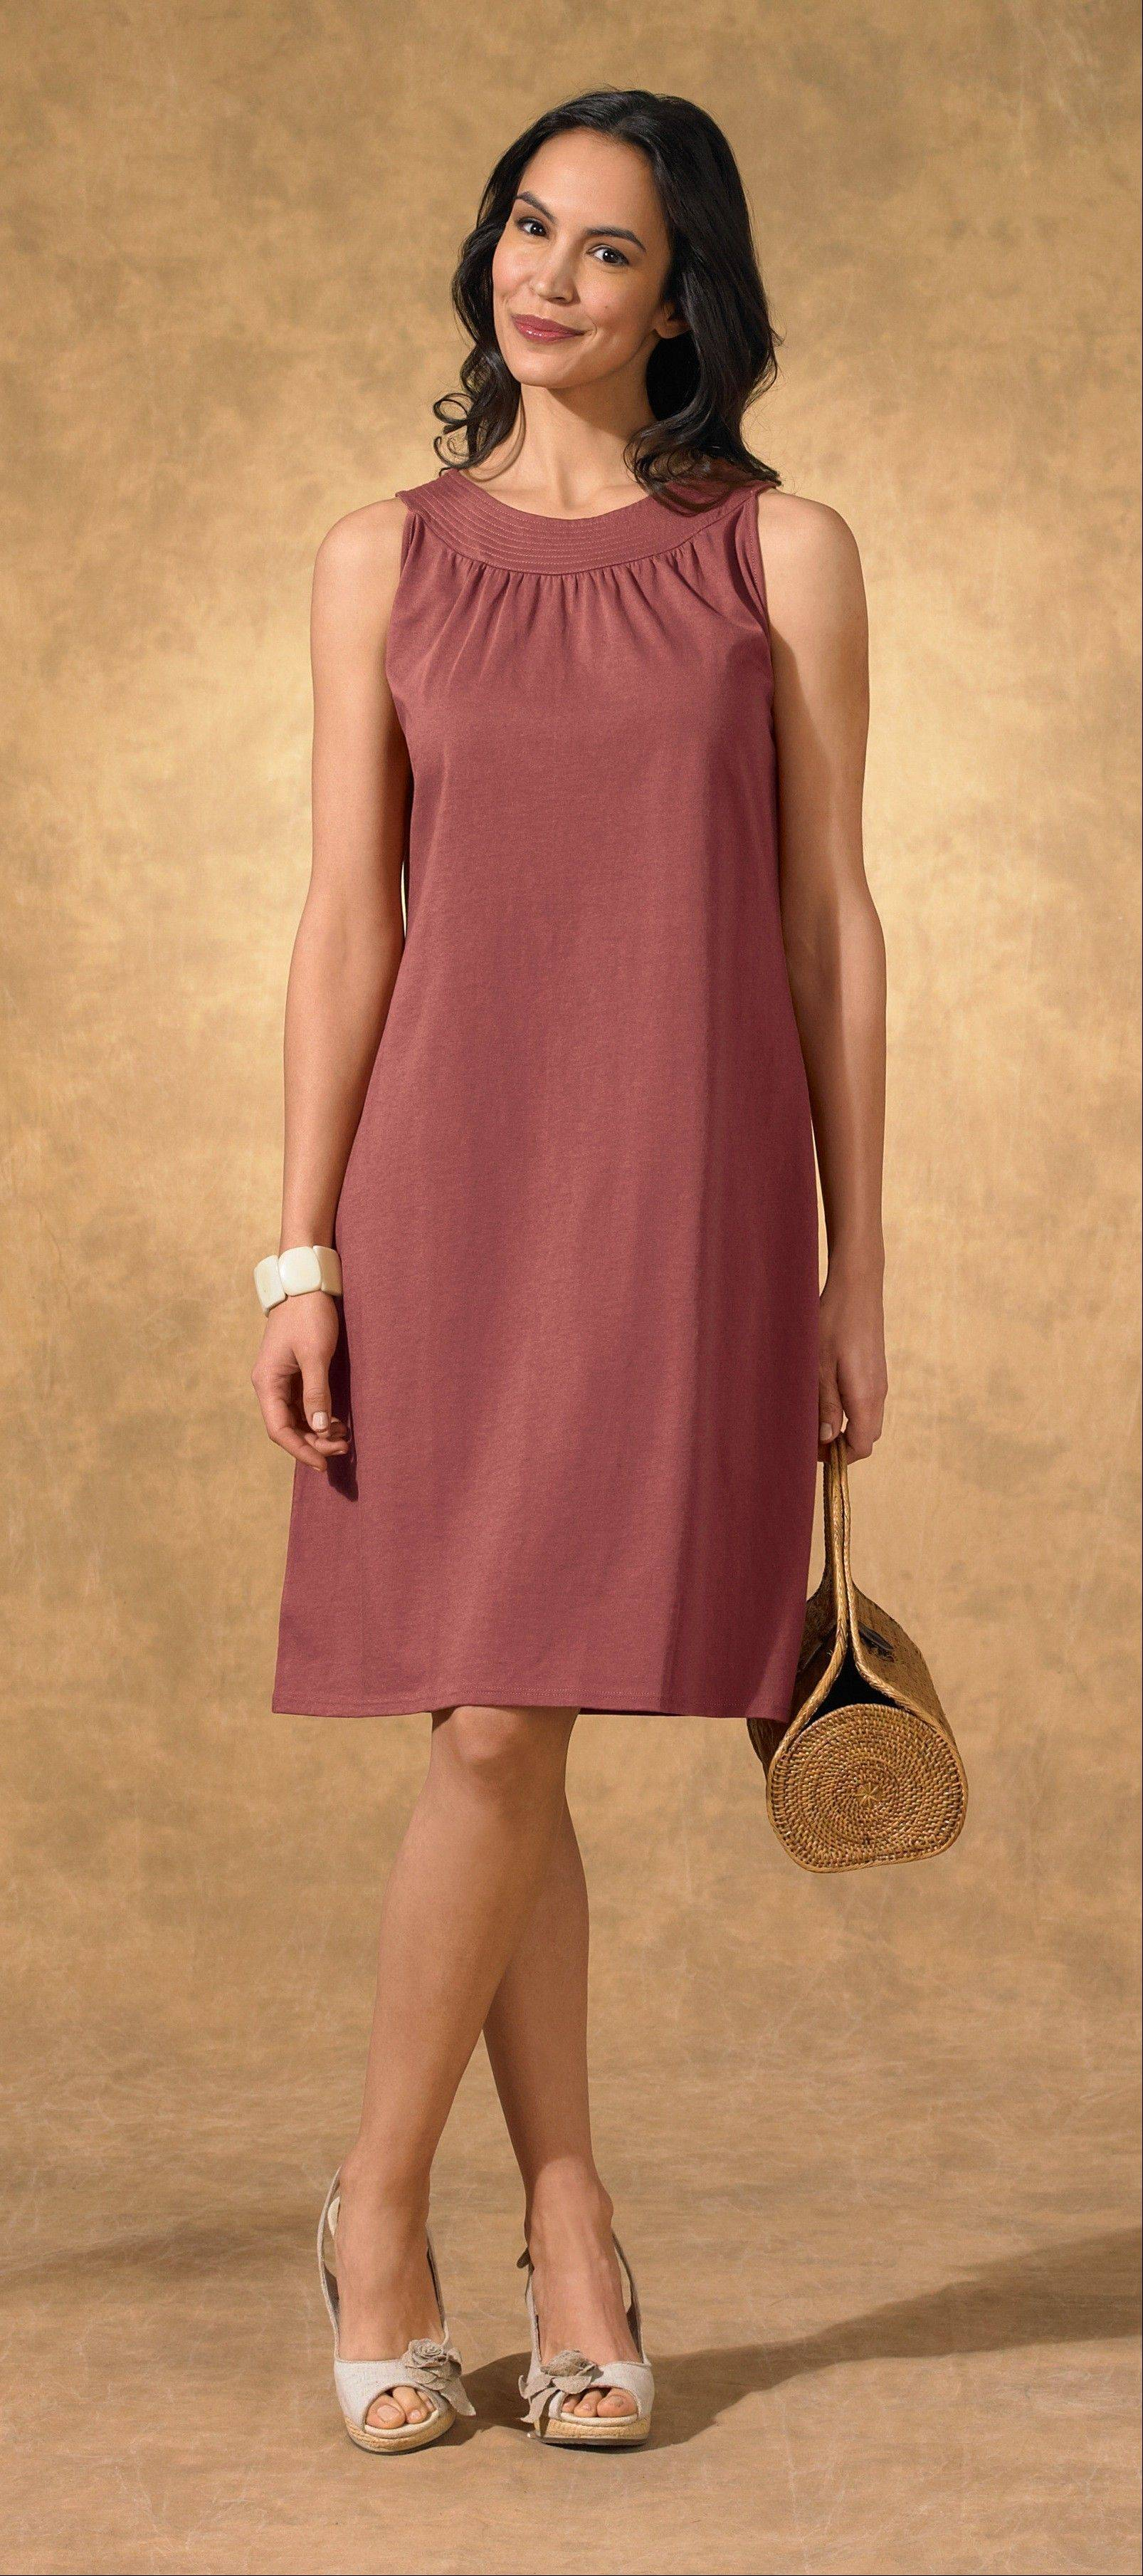 This undated product image provided by Fair Indigo shows one of the company's product. Fair Indigo is an online retailer that sells clothes and accessories that are certified by Fair Trade U.S.A., including $59.90 pima organic cotton dresses, $45.90 faux wrap skirts and $100 floral ballet flats.